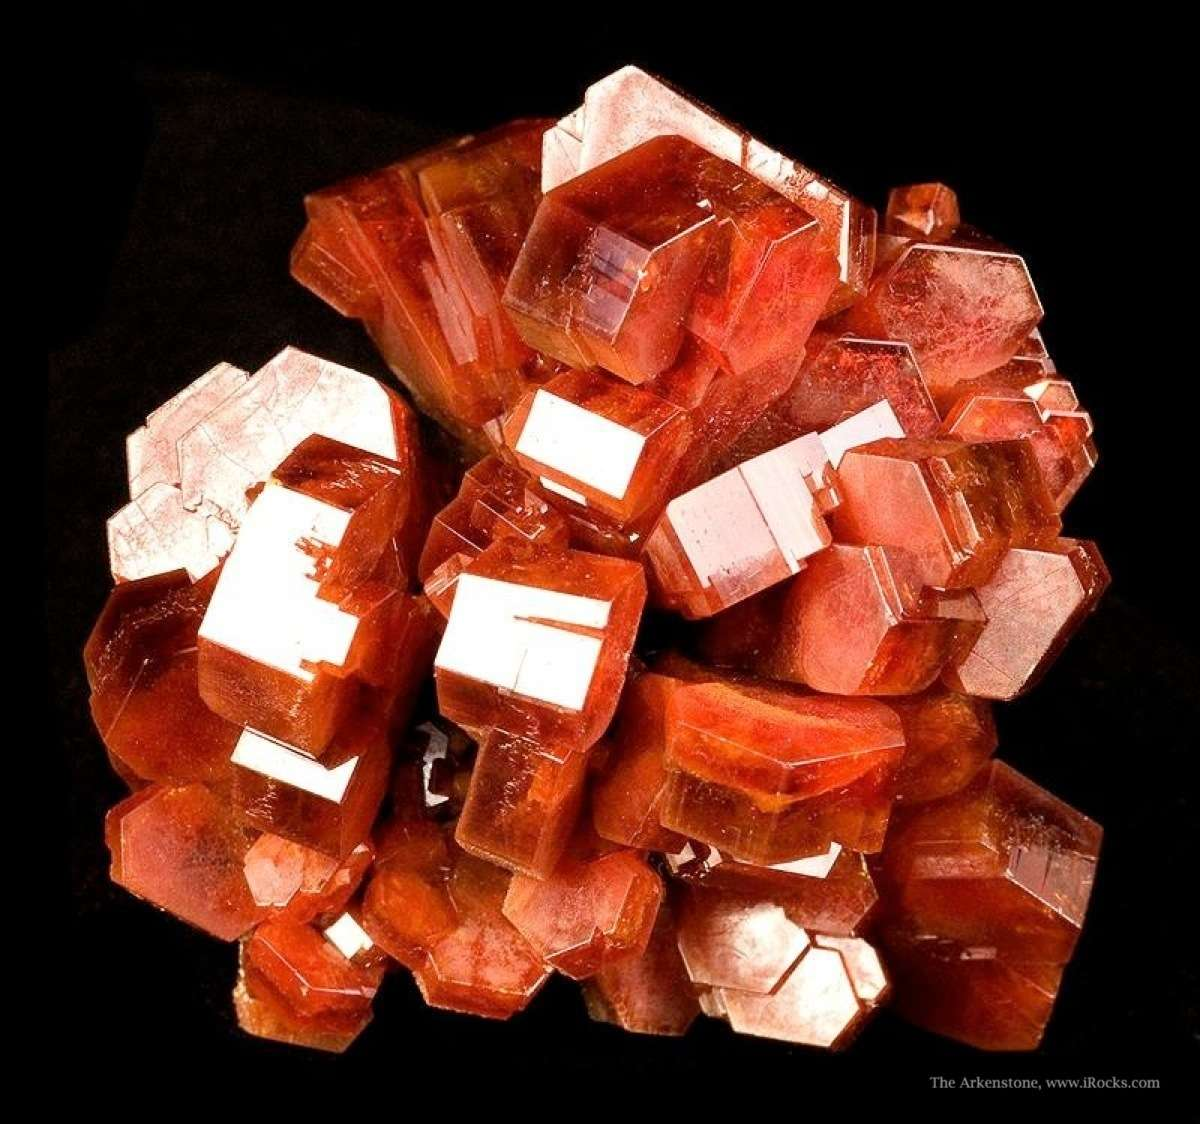 From 2009 noted thick robust crystals tabular specimen crystals 1 7 cm